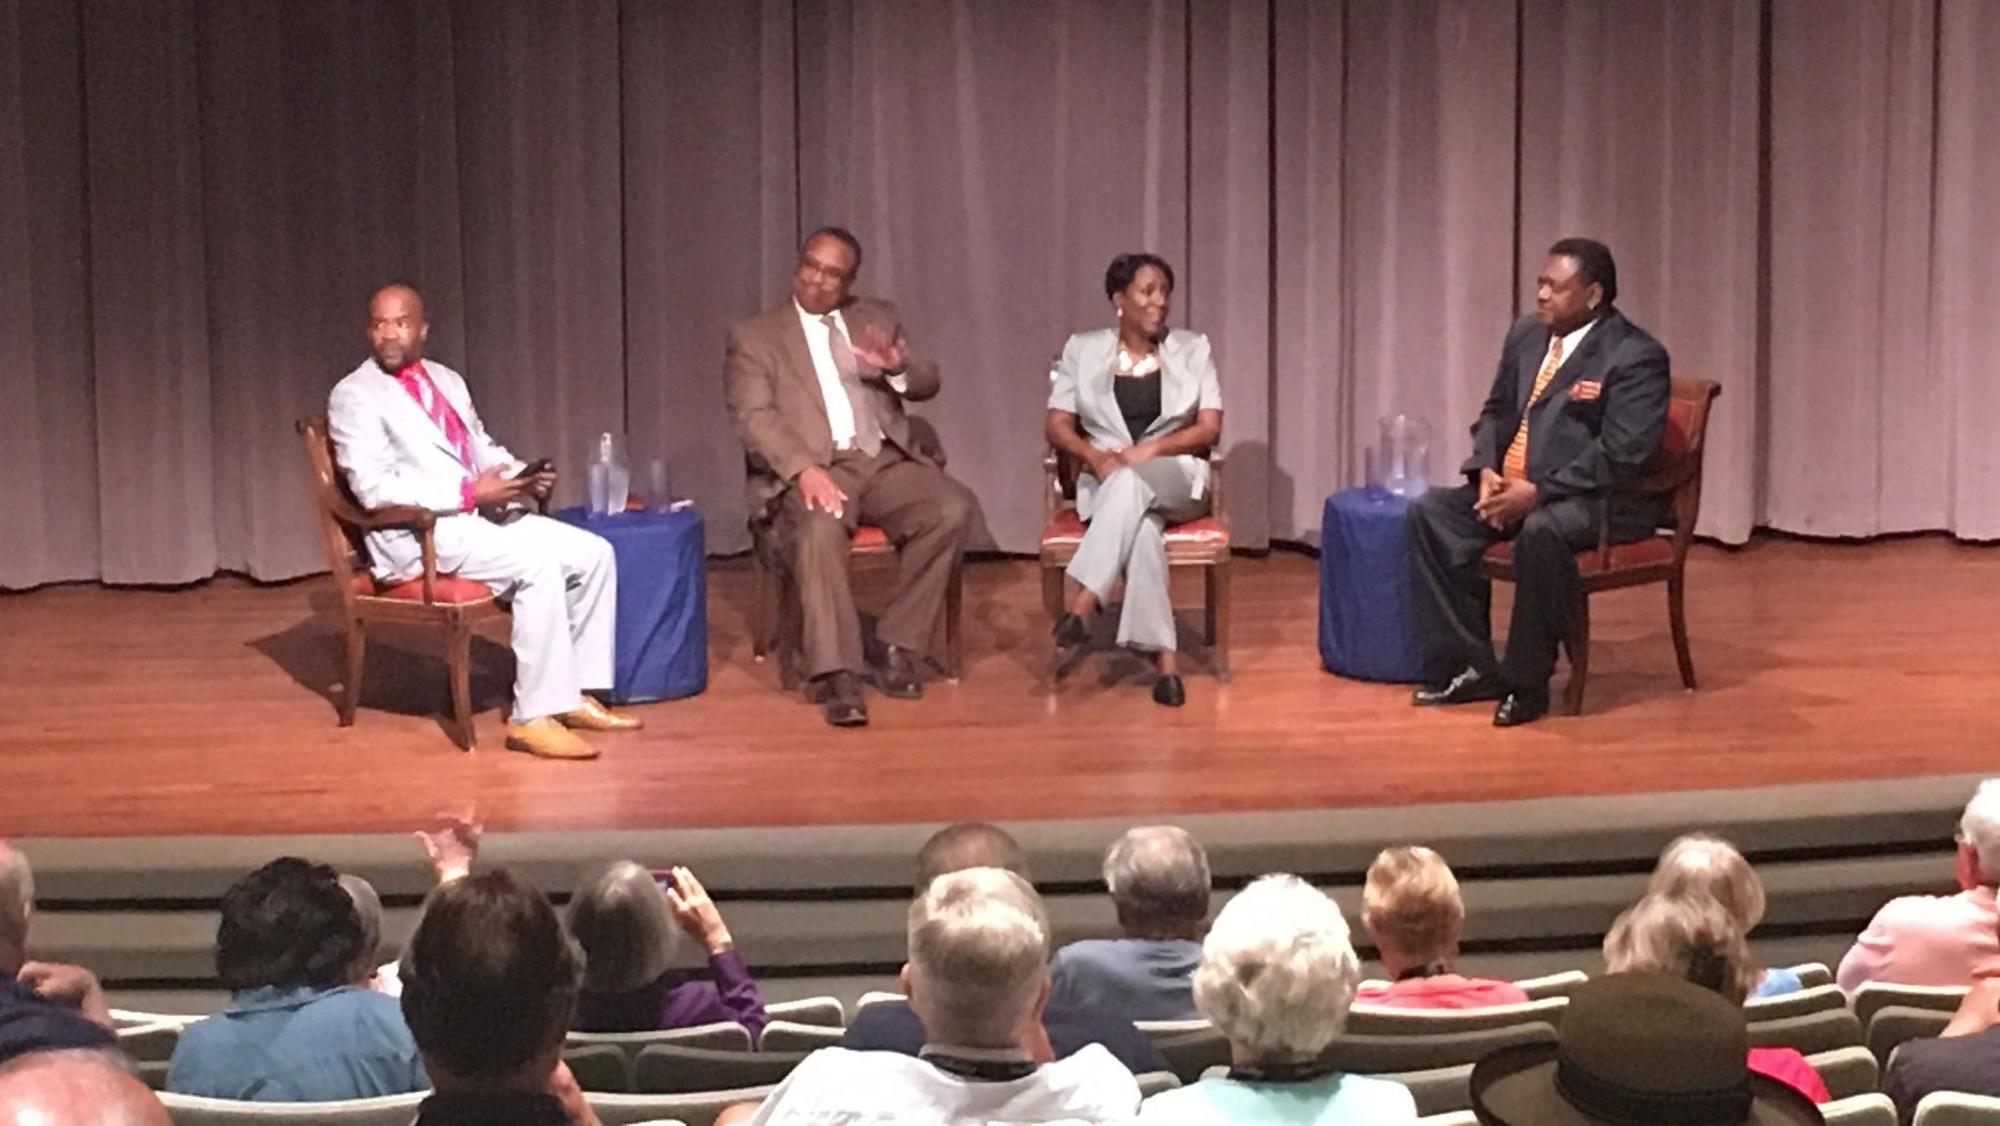 Former historical interpreters reflect on early days of African American programming at Colonial Williamsburg